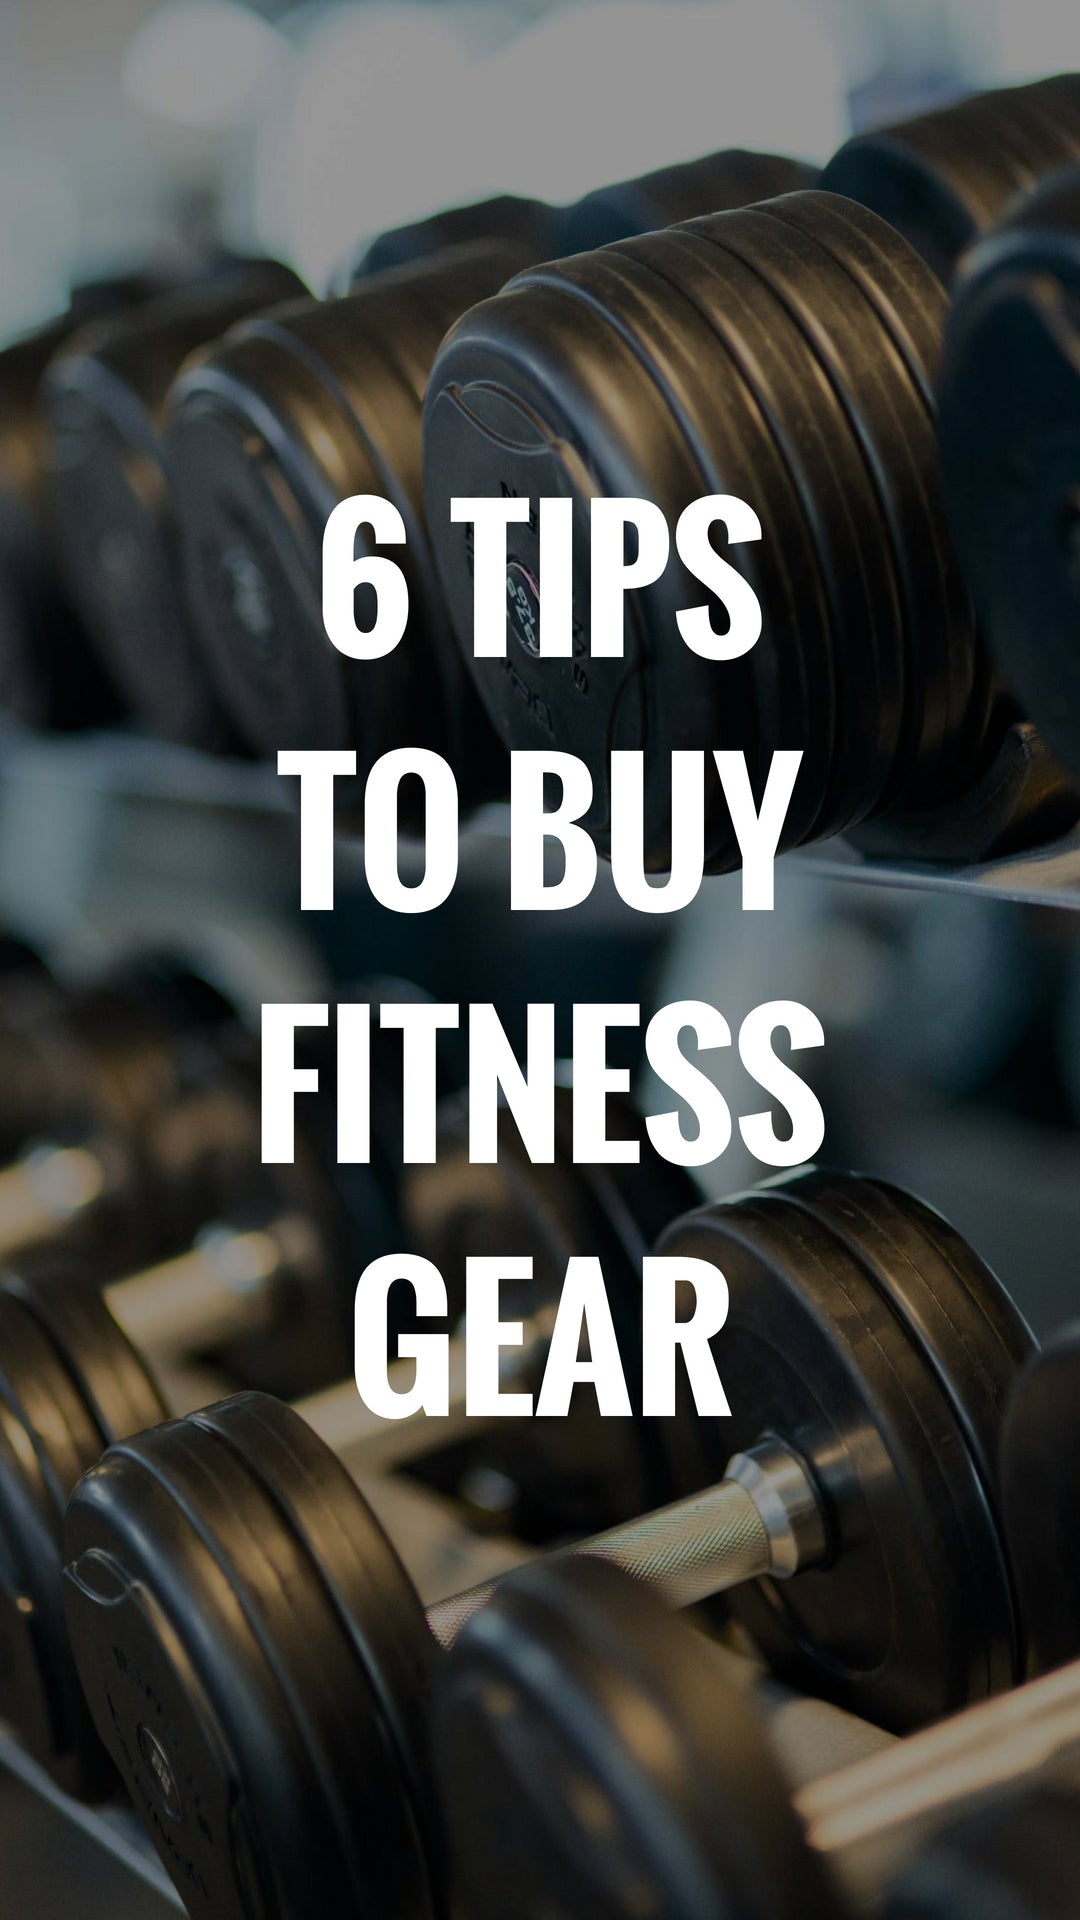 6 Tips To Buy Fitness Gear